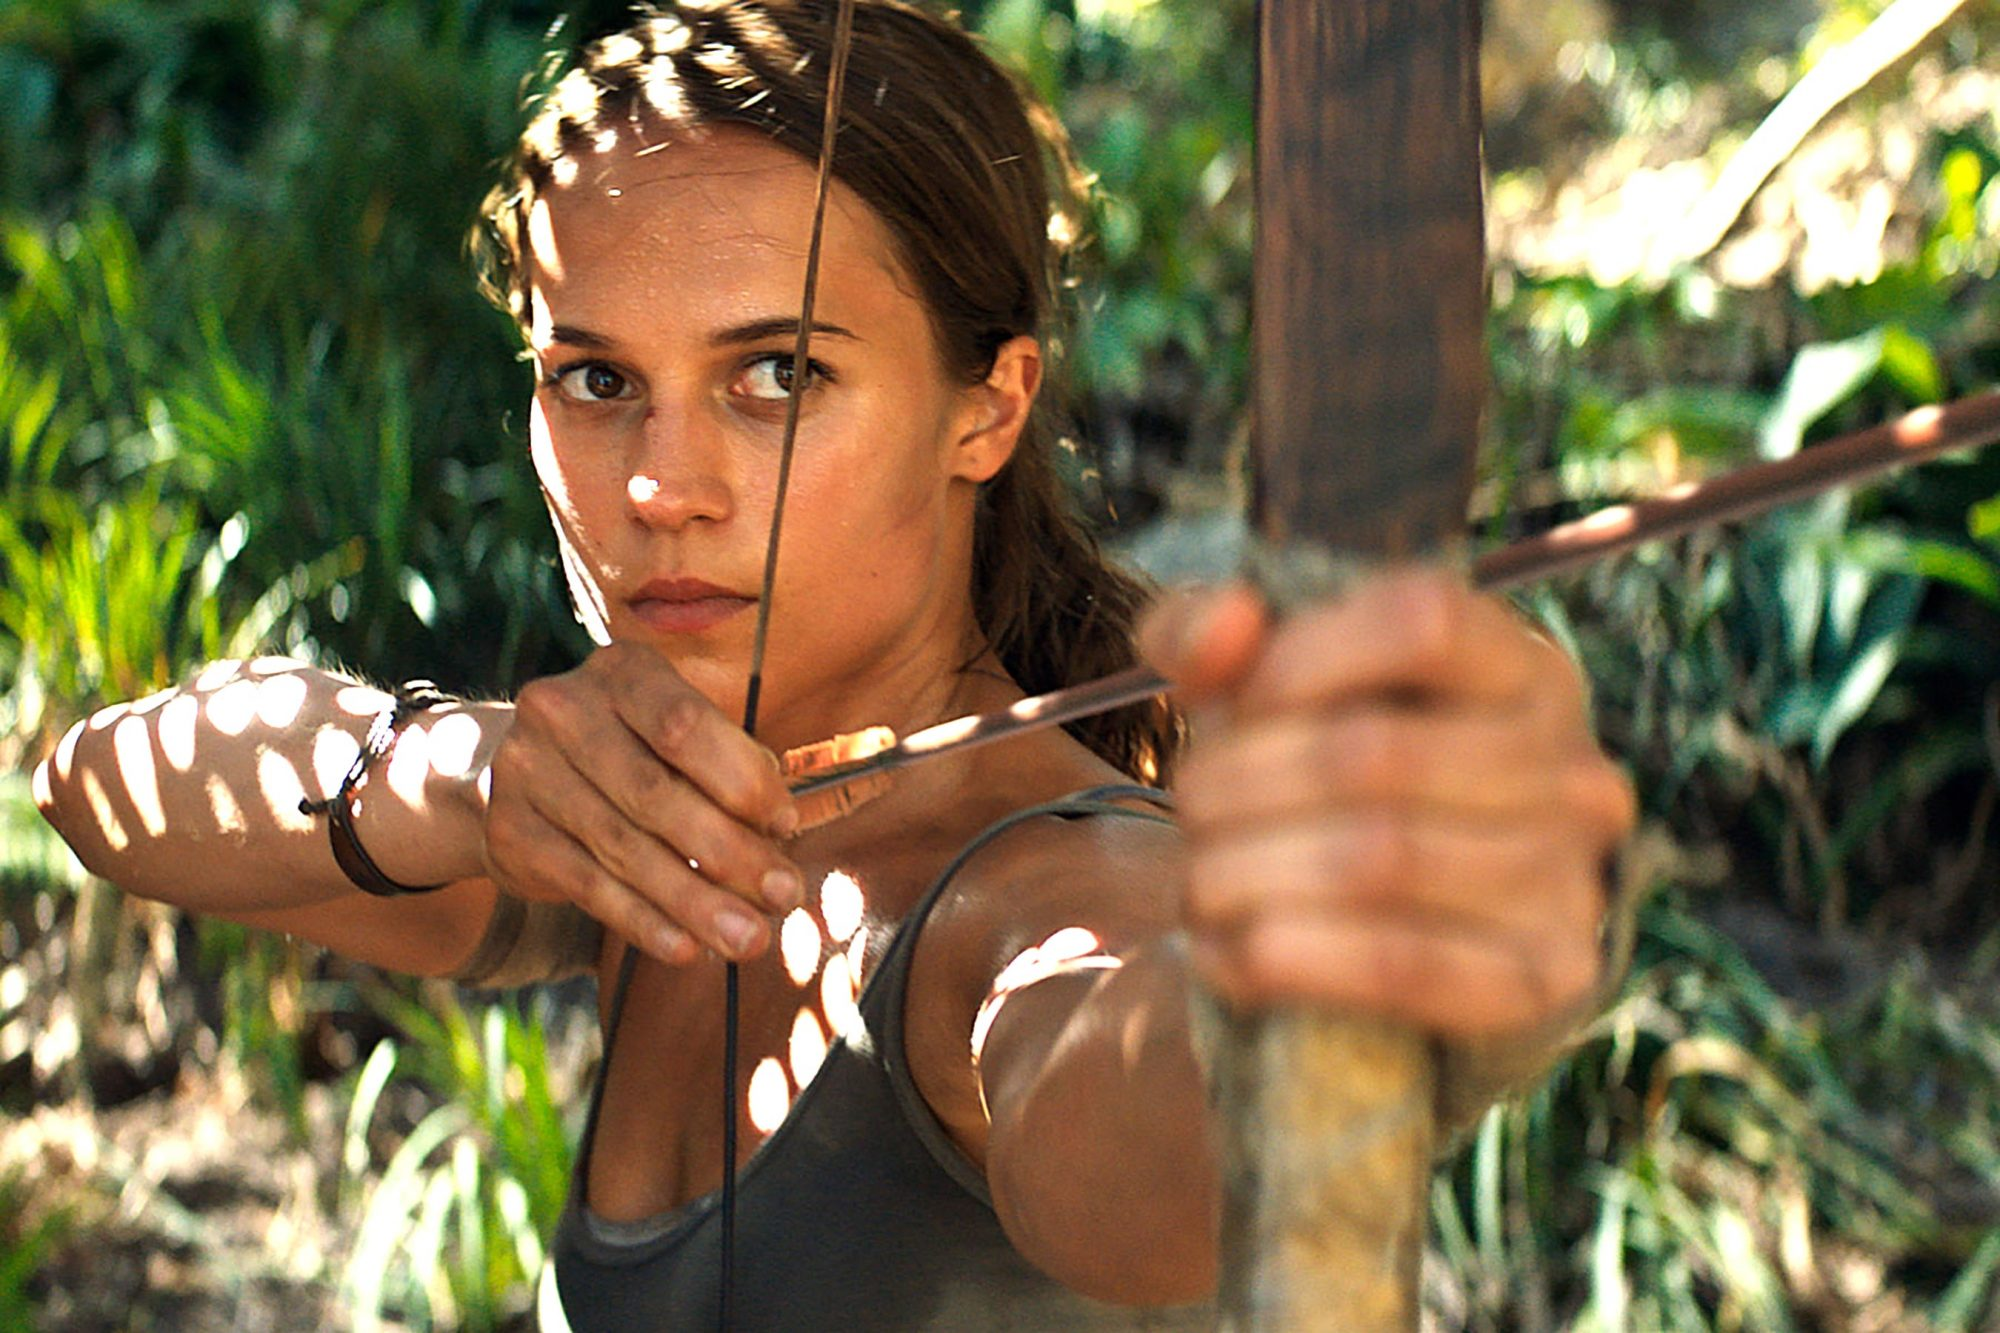 Tomb Raider 2 With Alicia Vikander In Development With Writer Amy